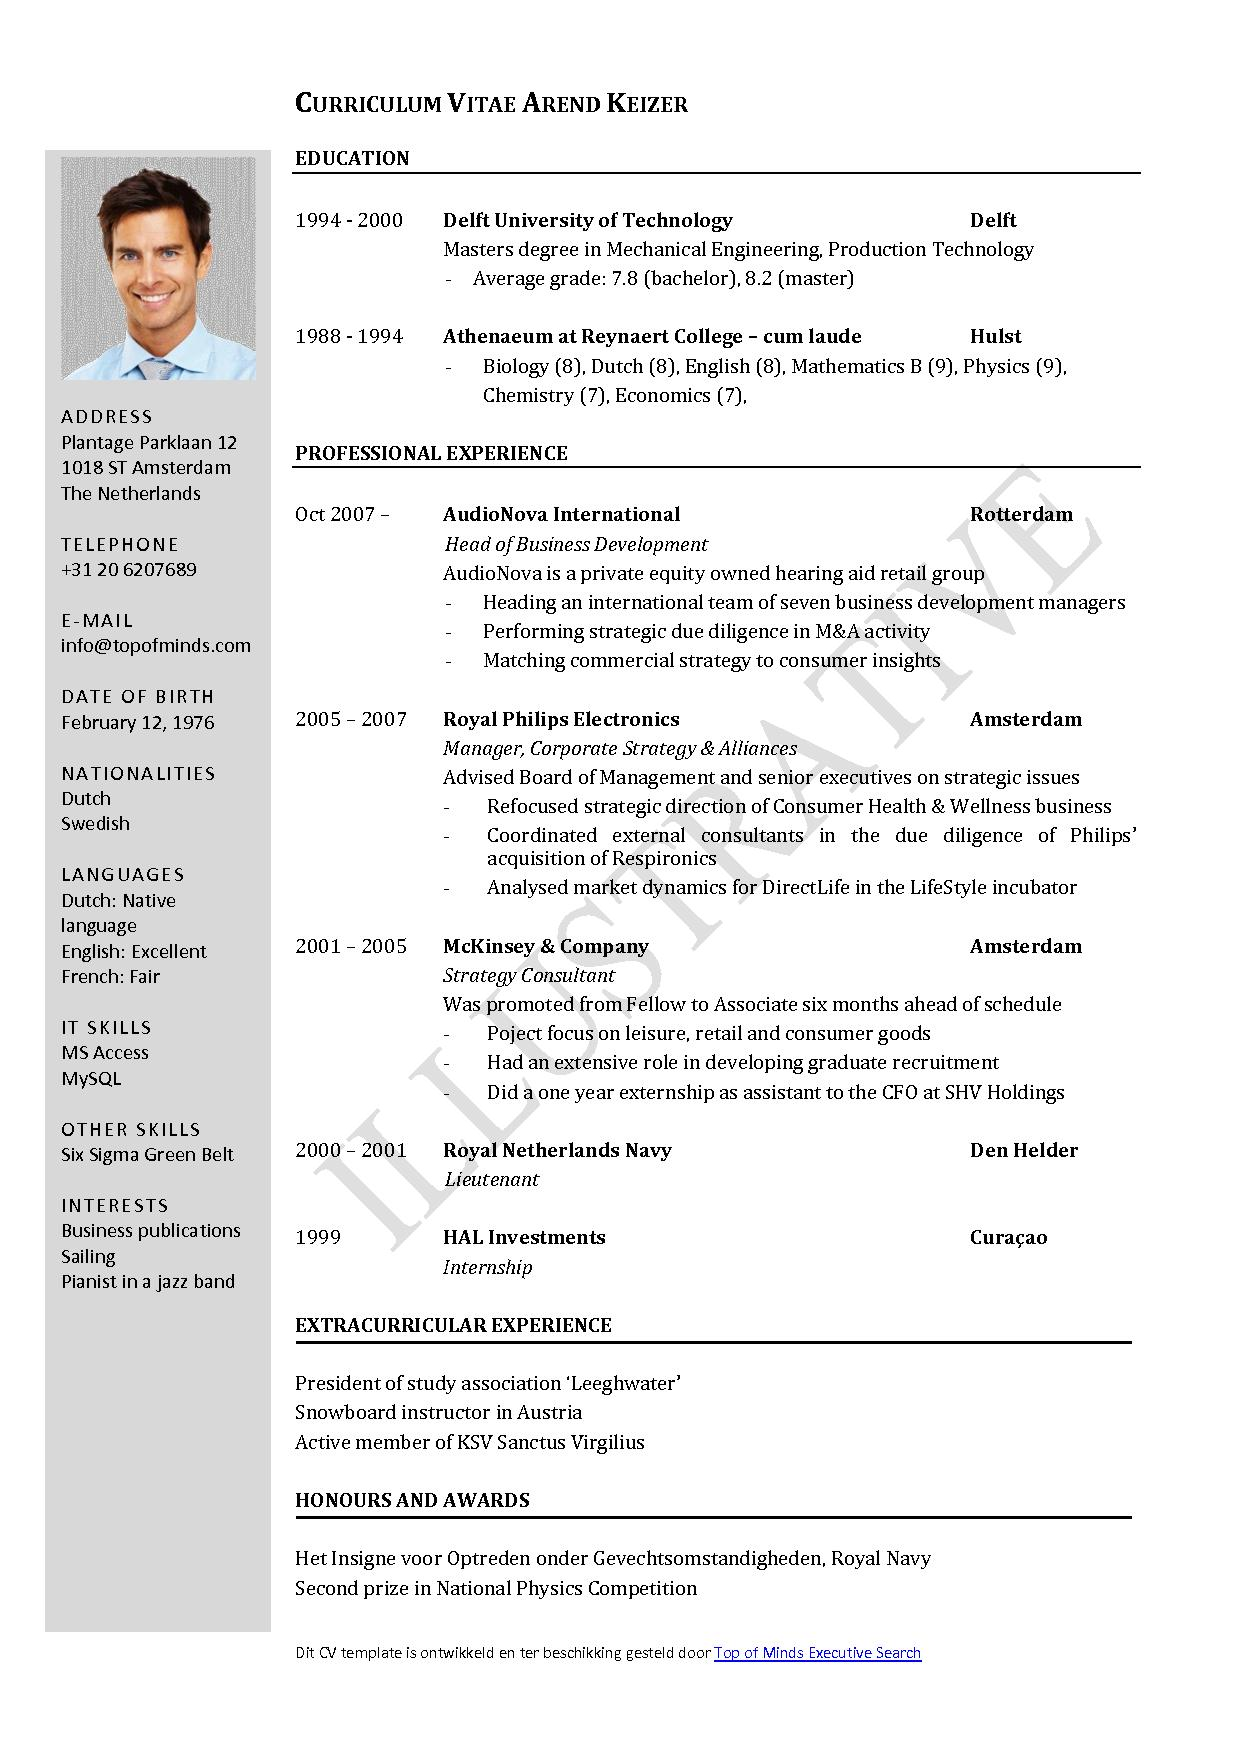 Download Template For Curriculum Vitae